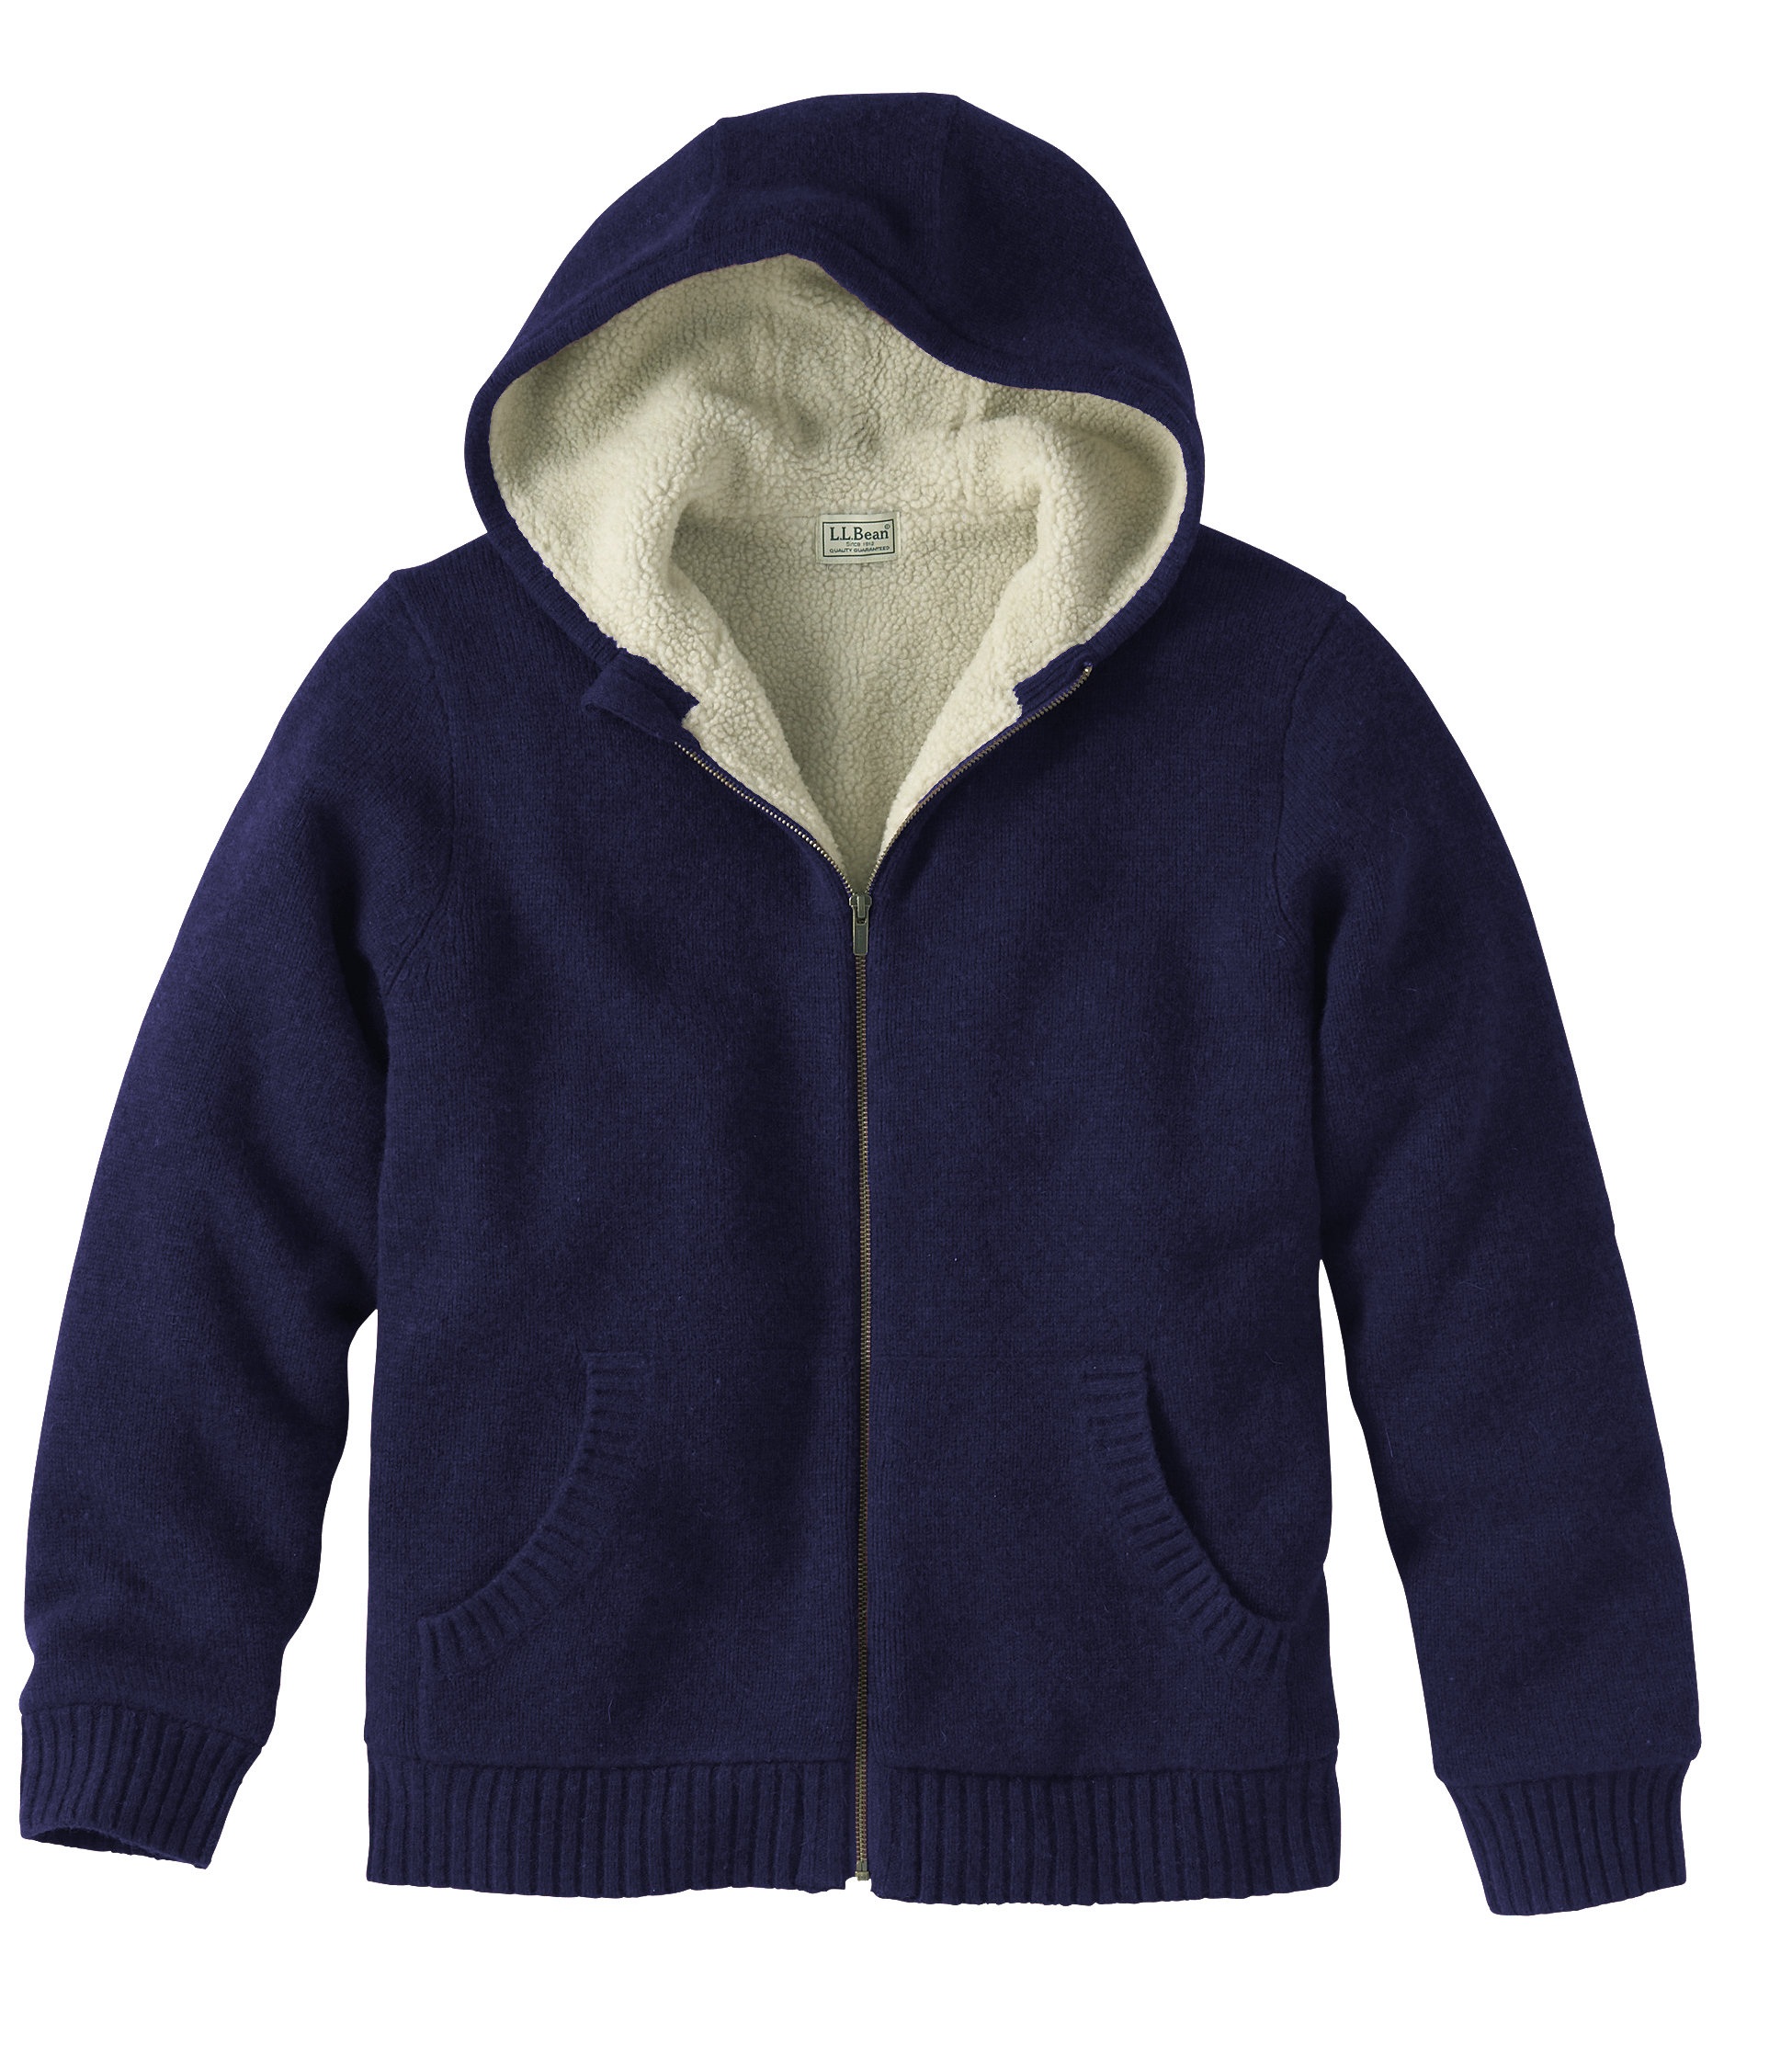 L.L.Bean Sherpa Fleece-Lined Sweater, Hoodie